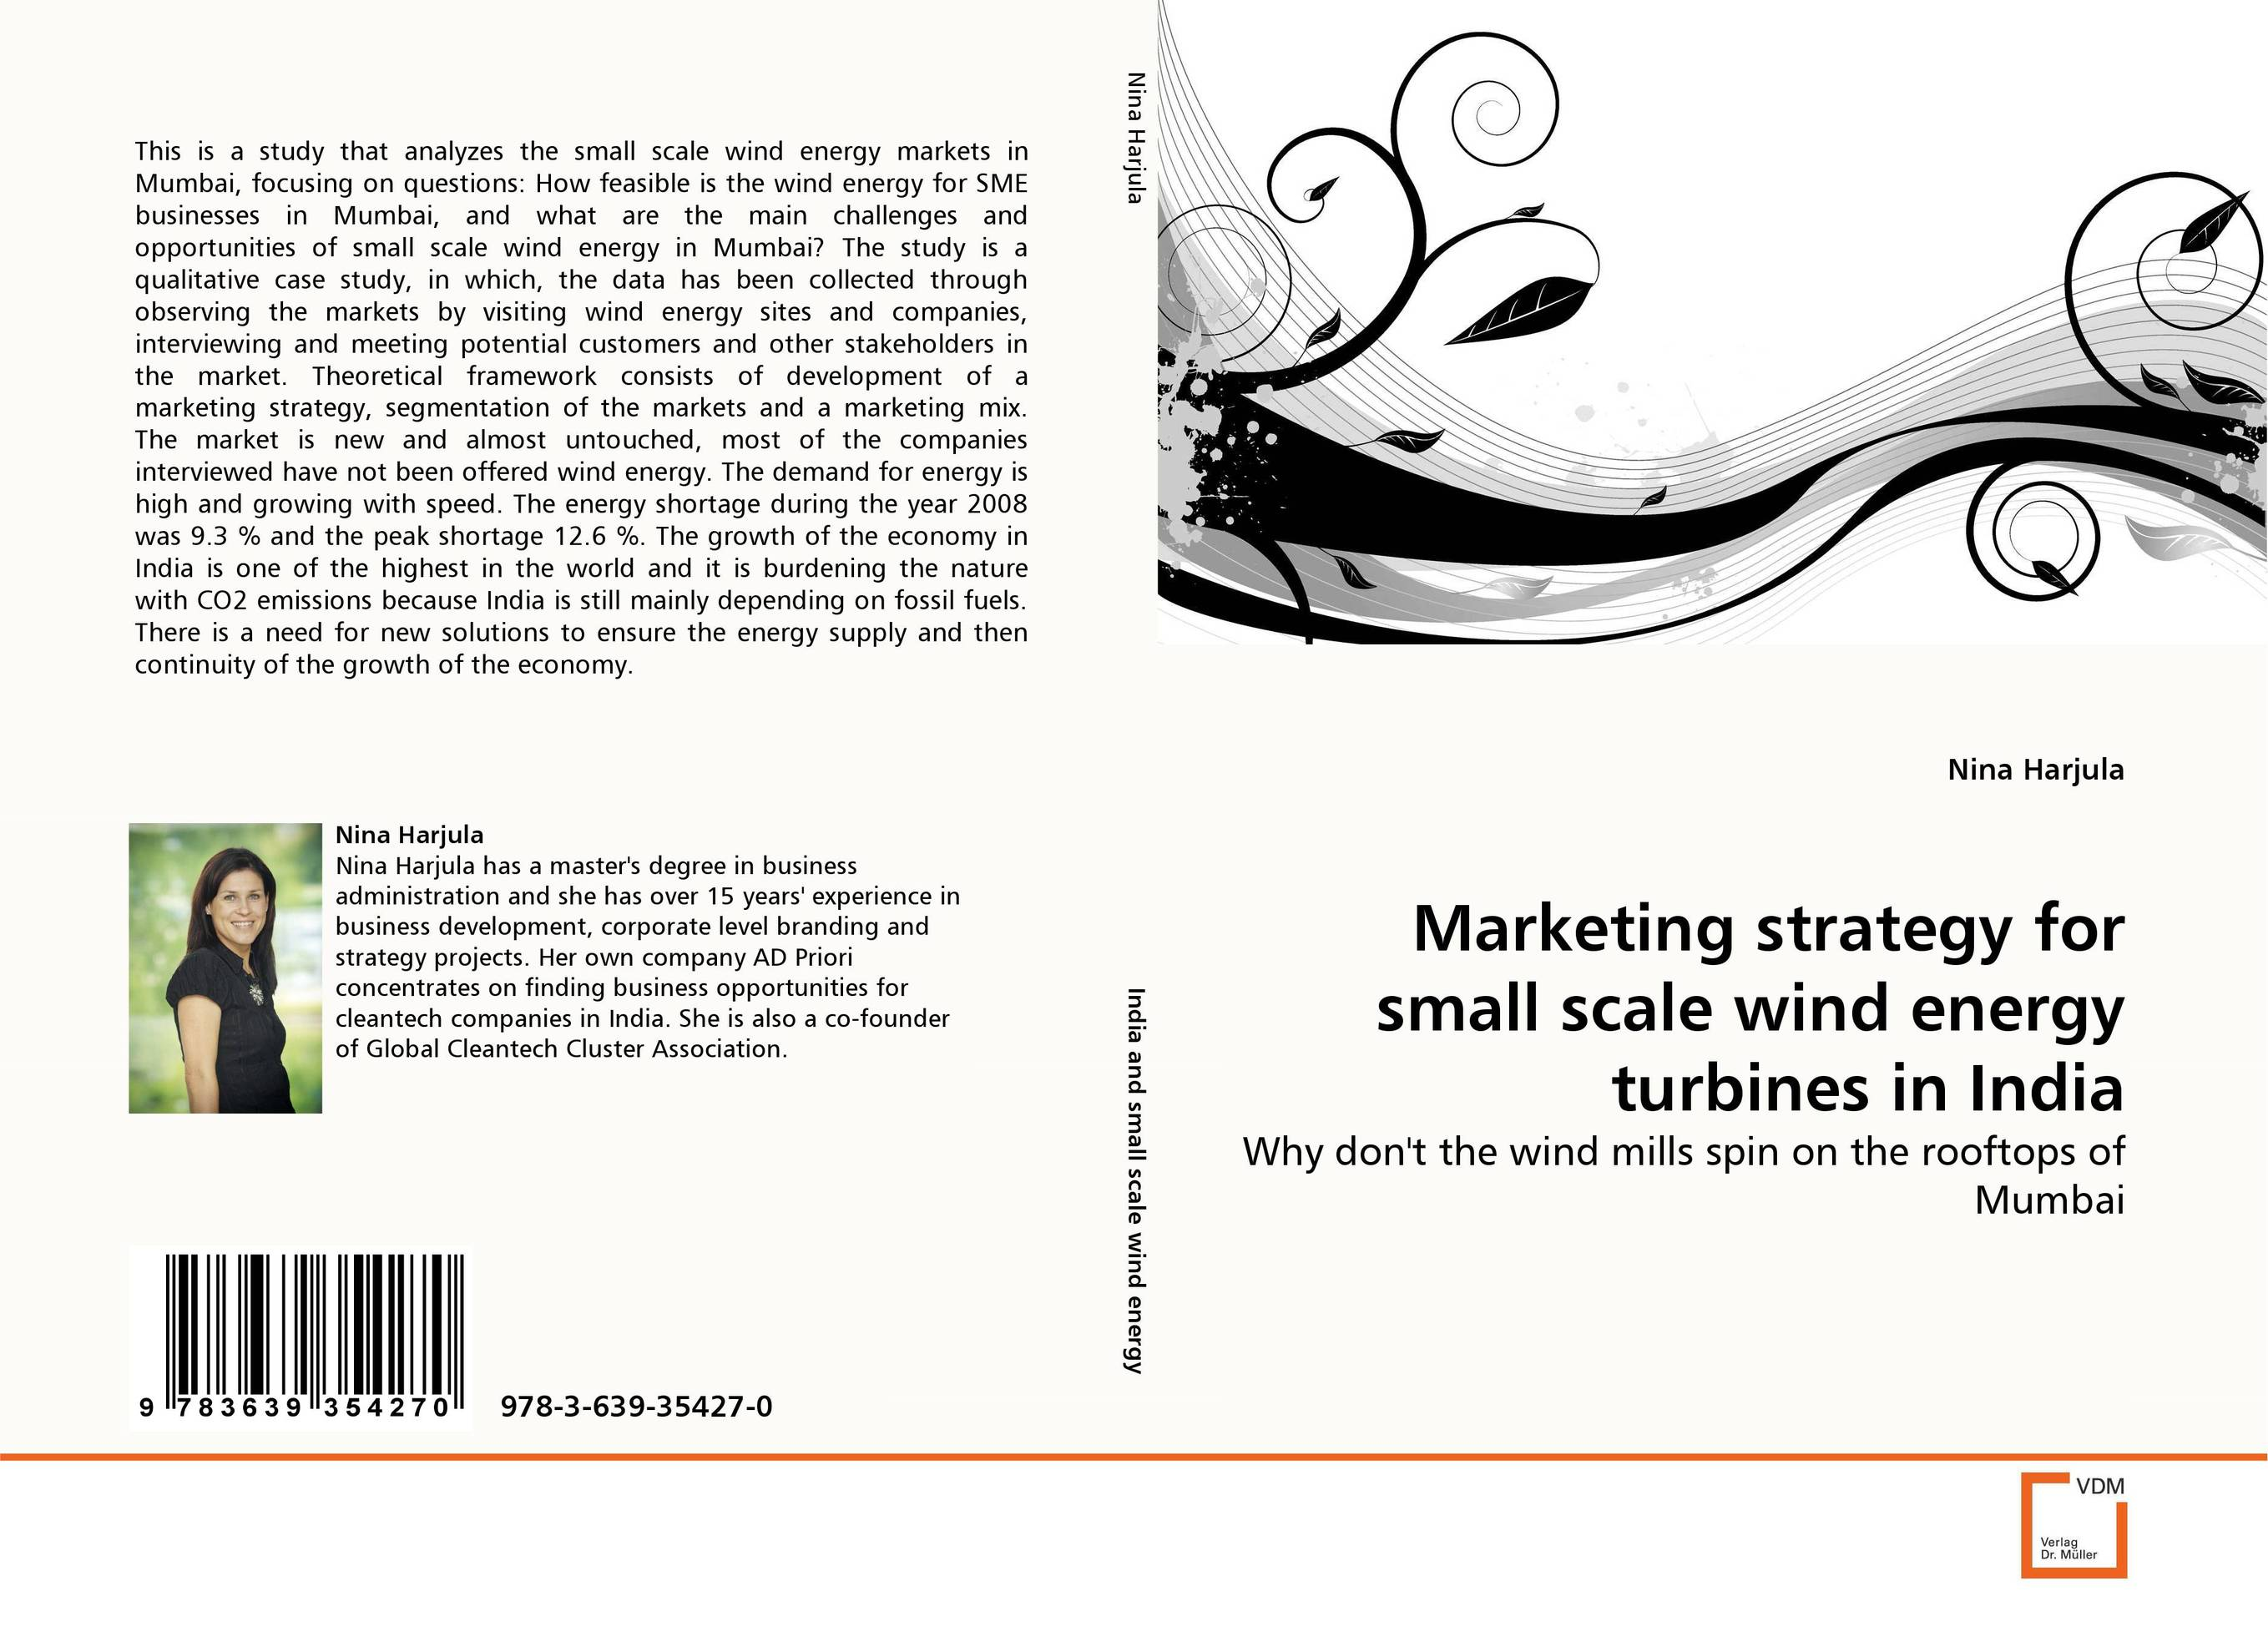 Marketing strategy for small scale wind energy turbines in India a wind in the night